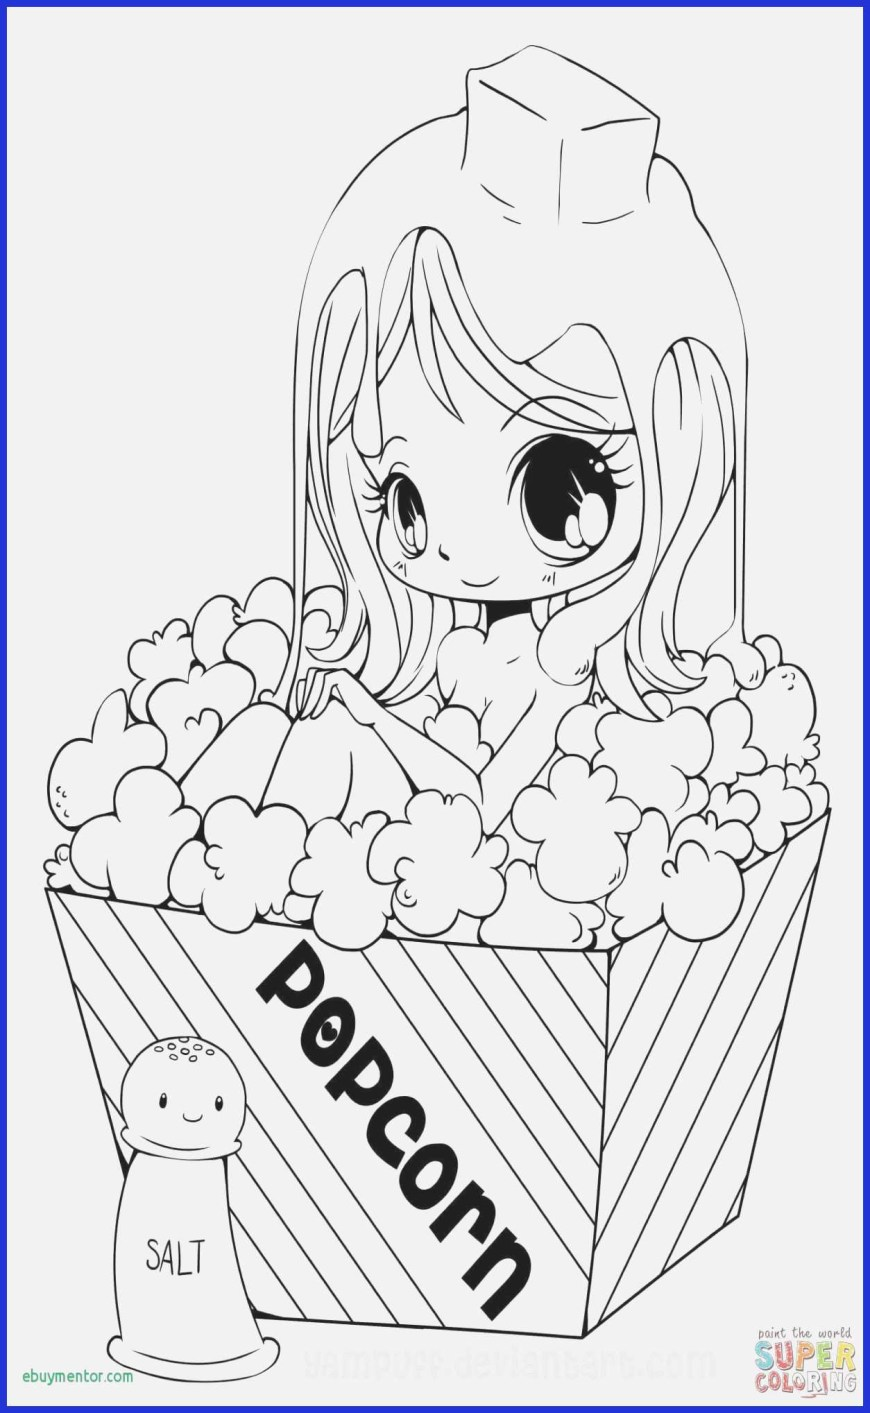 Recolor Coloring Pages Coloring Page Recolor Coloring Book Ta Colouring Pages Page